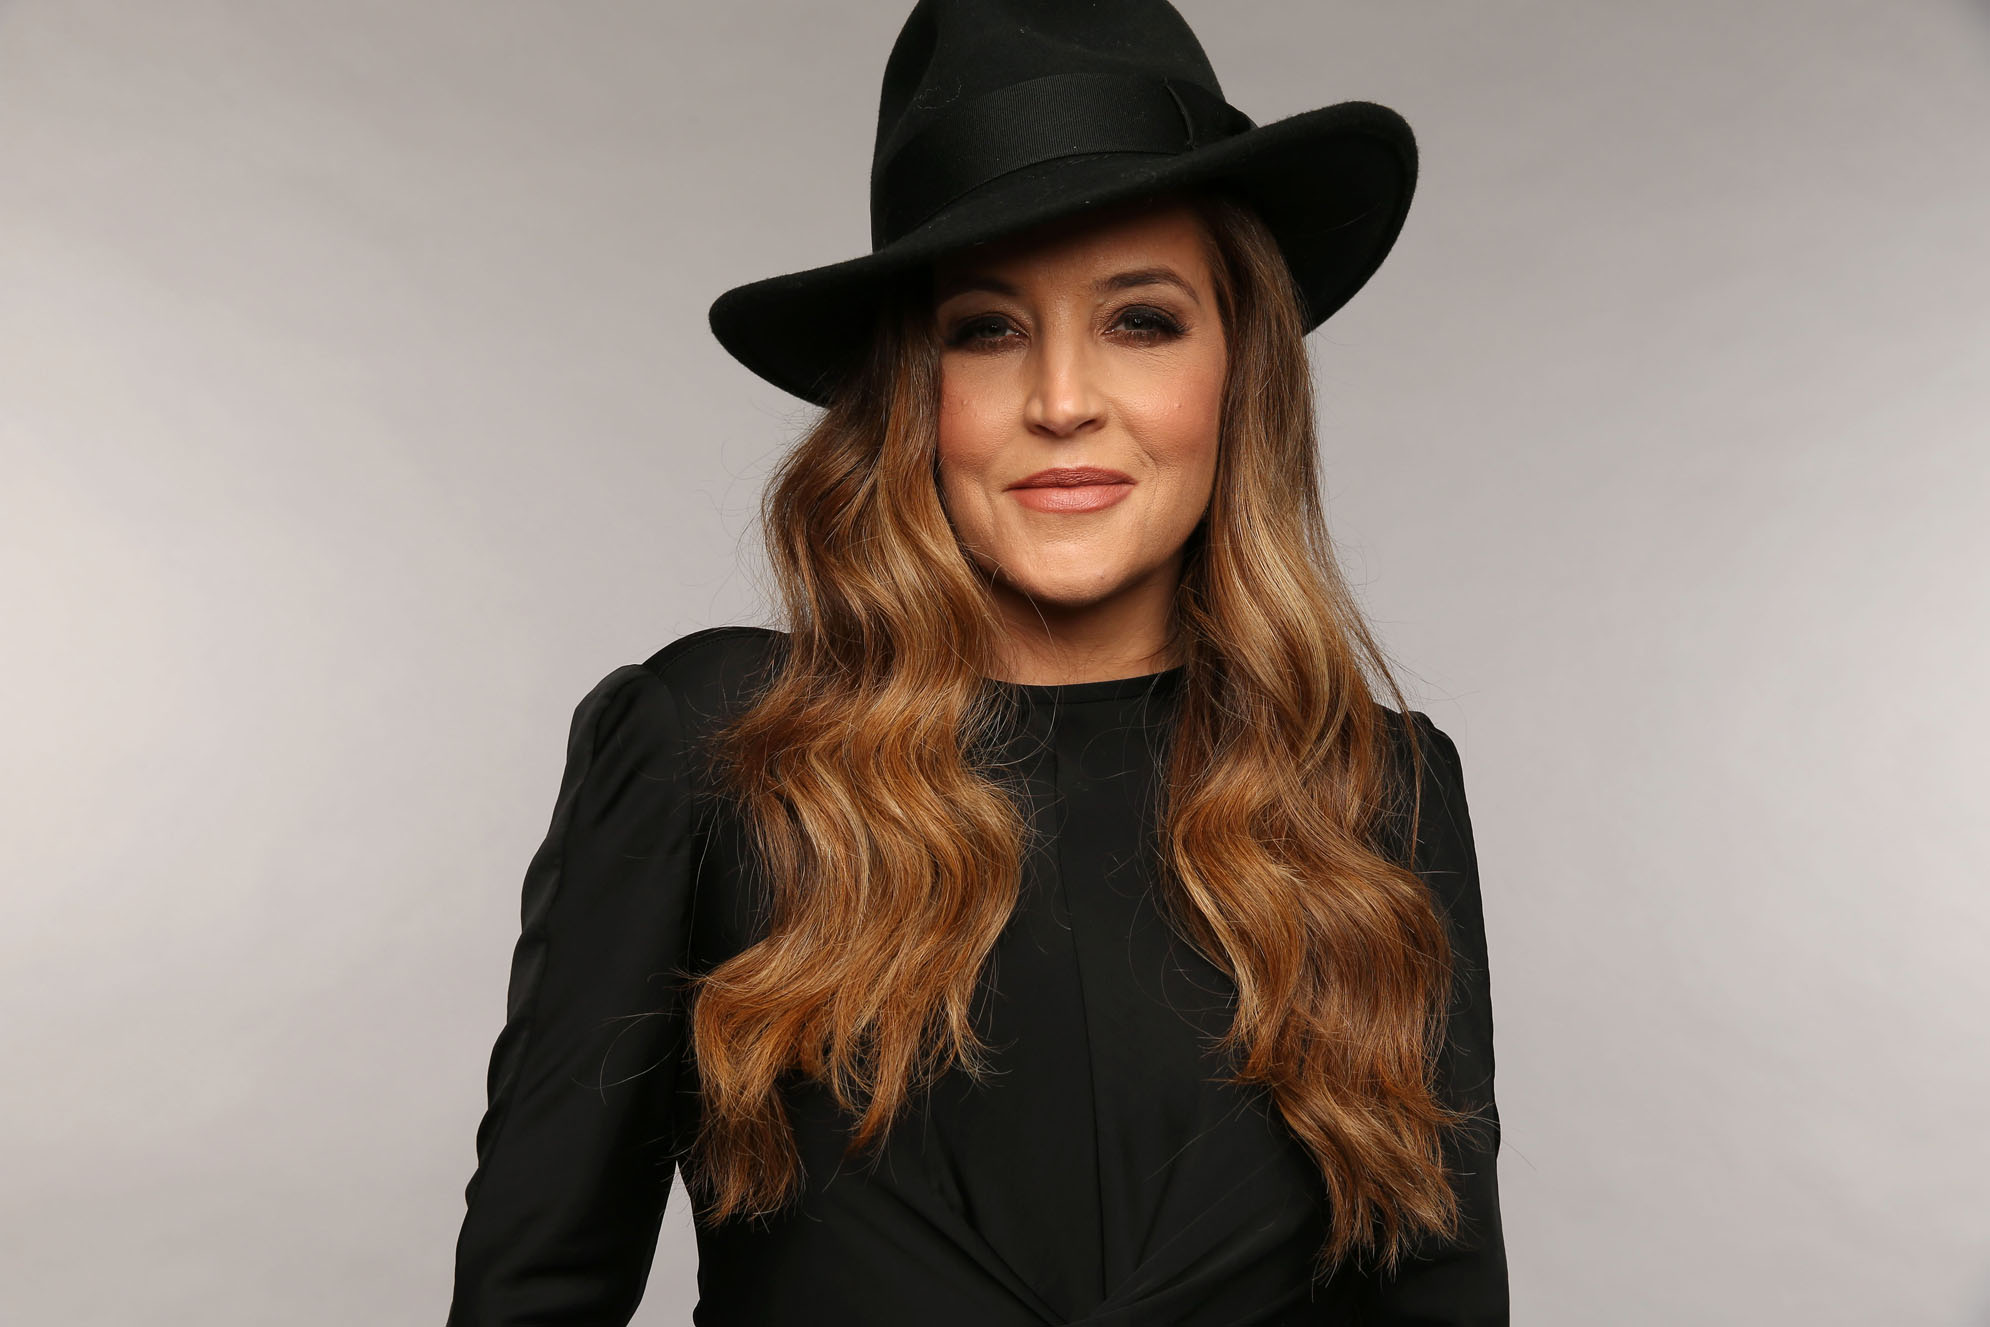 lisa-marie-presley-elvis-what-is-music